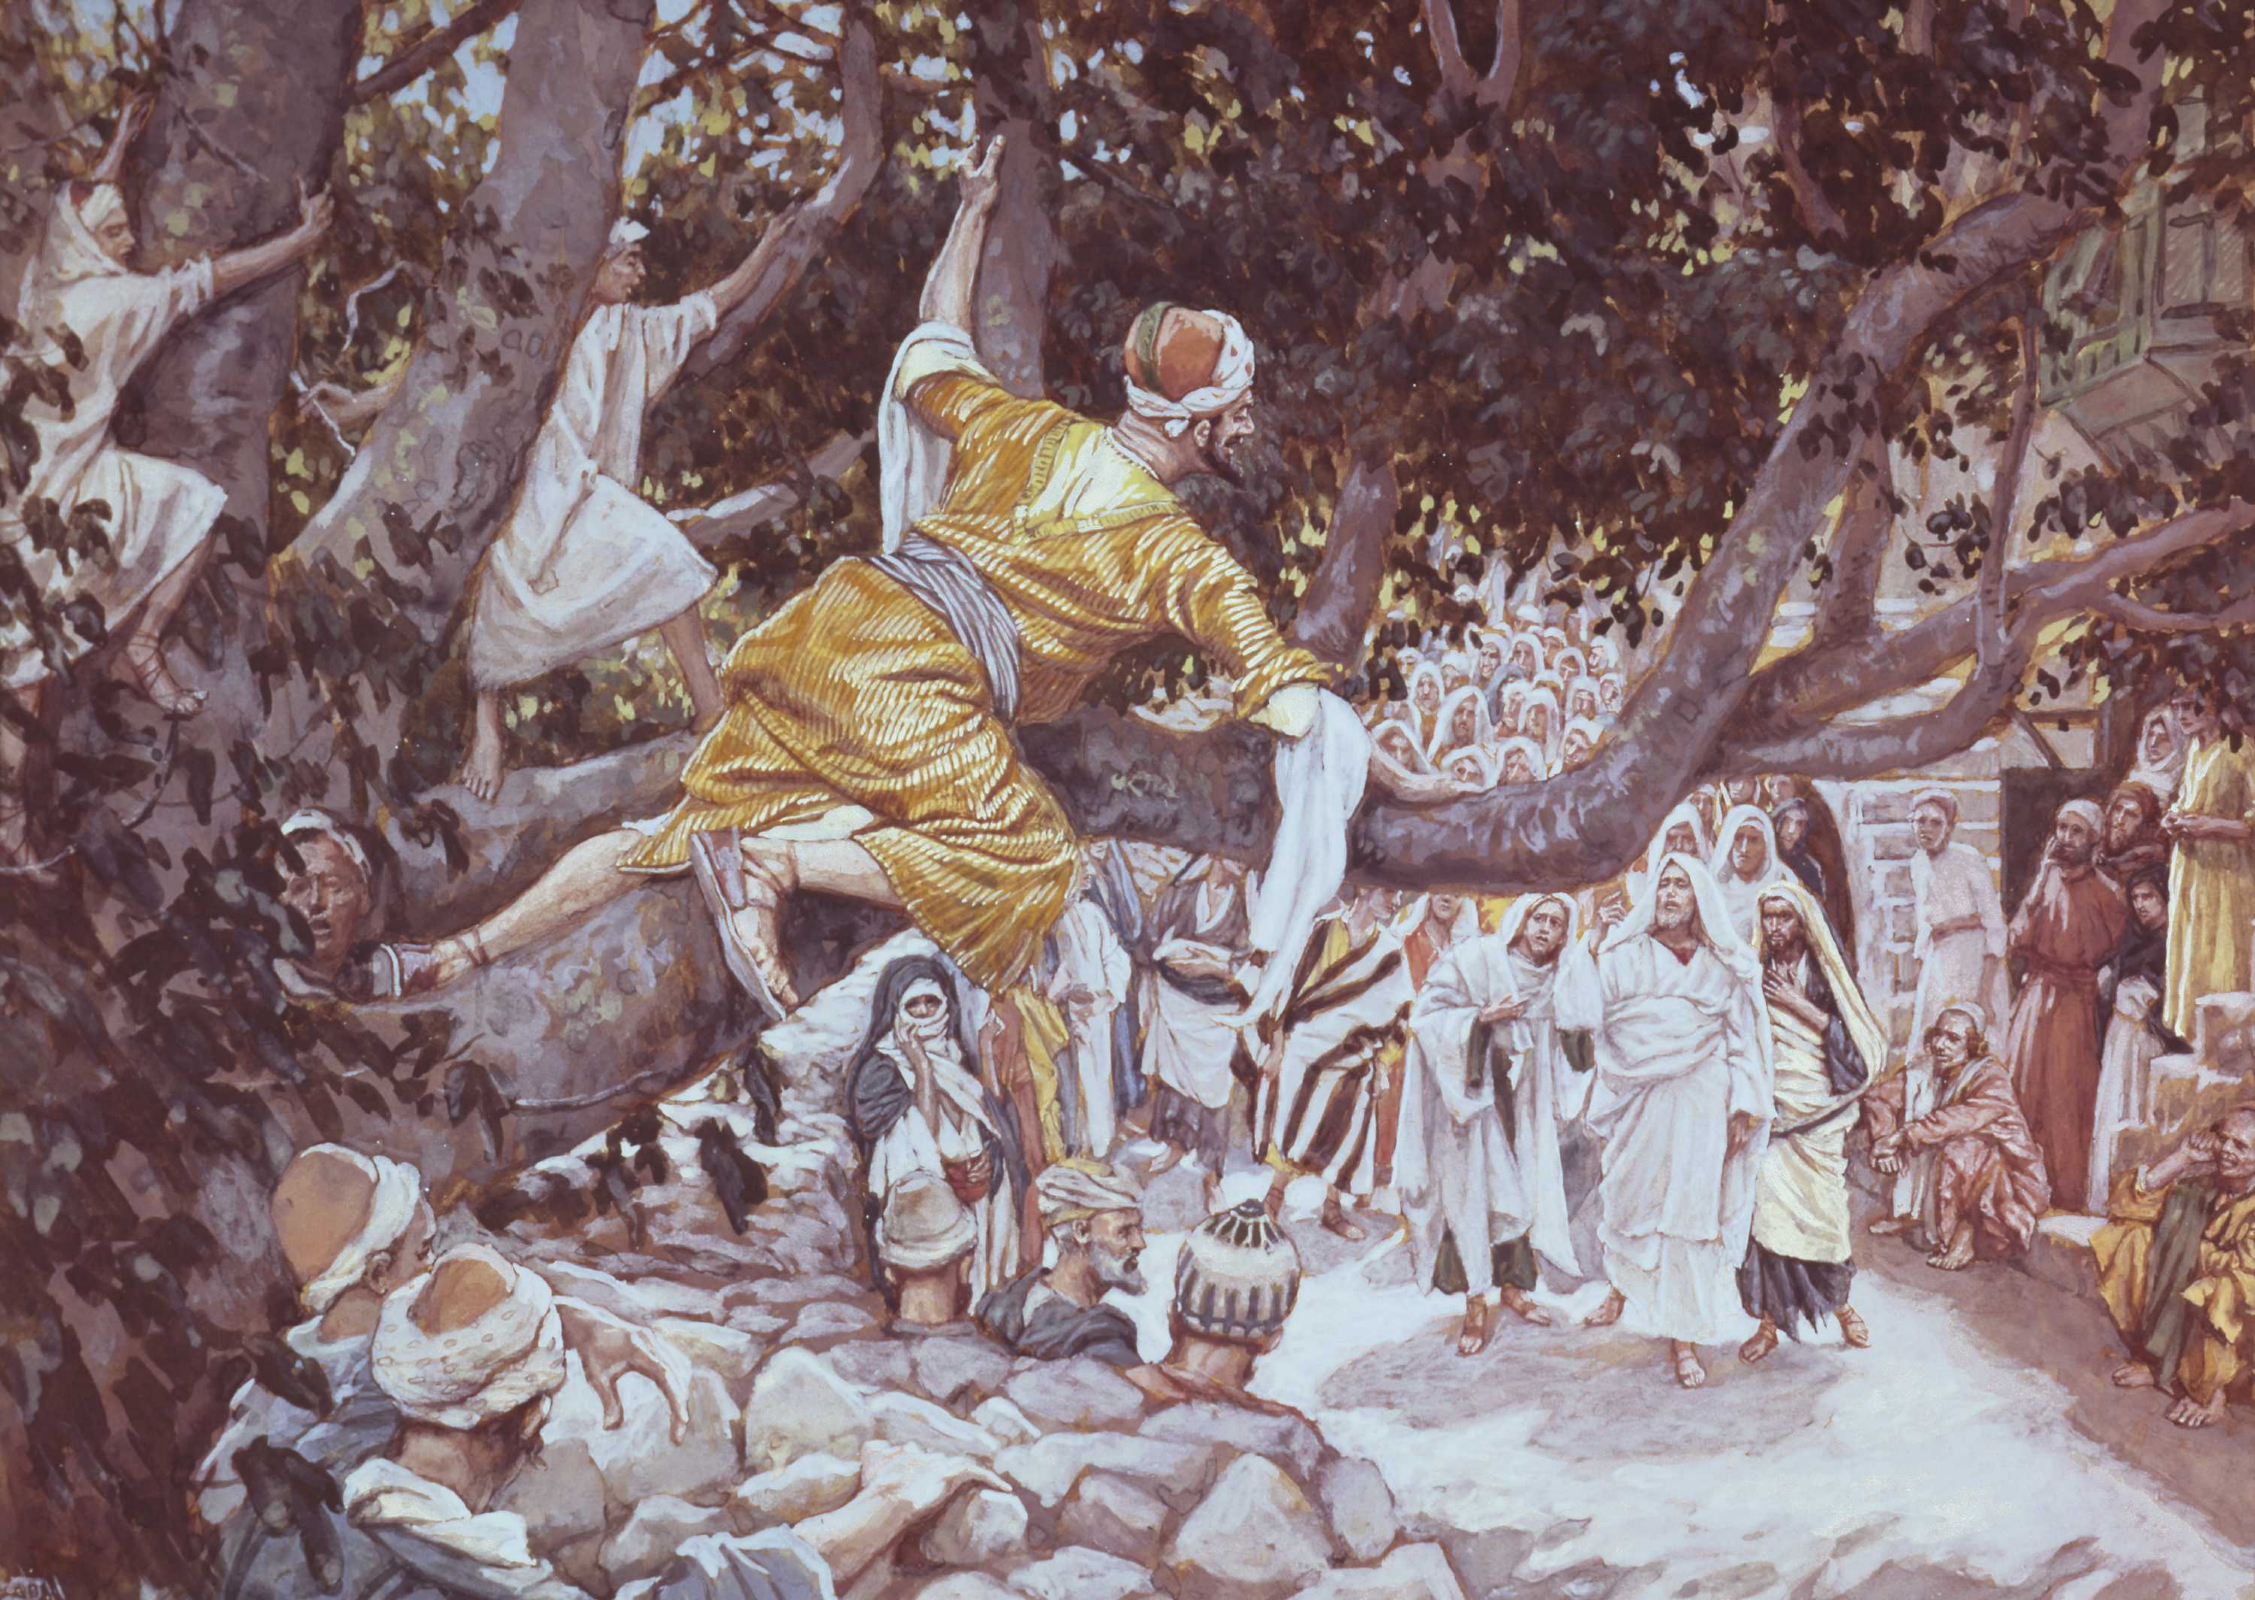 Zacchaeus in the Sycamore Tree